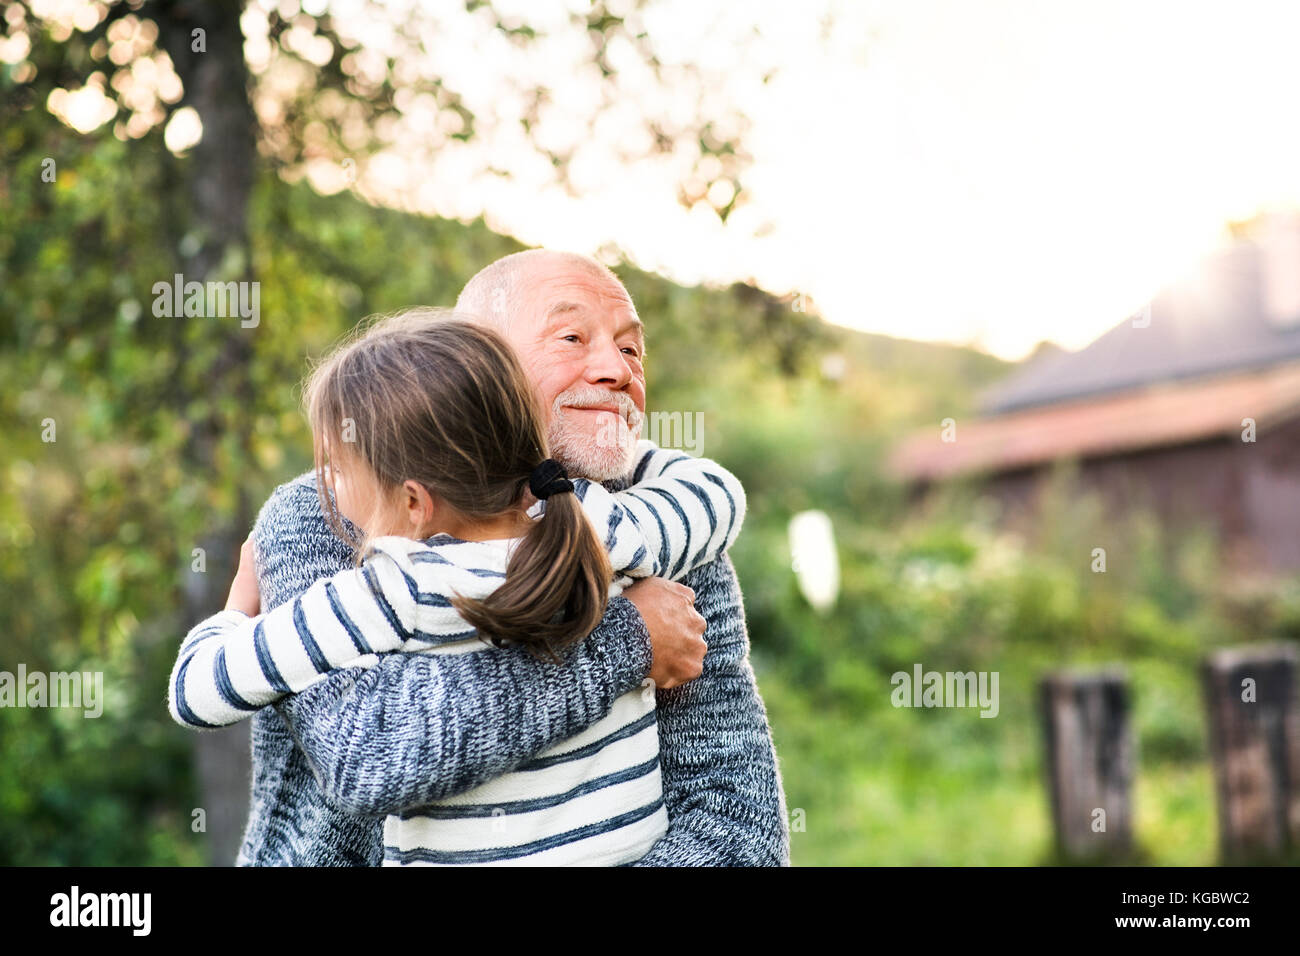 Grandfather giving his grandaughter a hug. - Stock Image